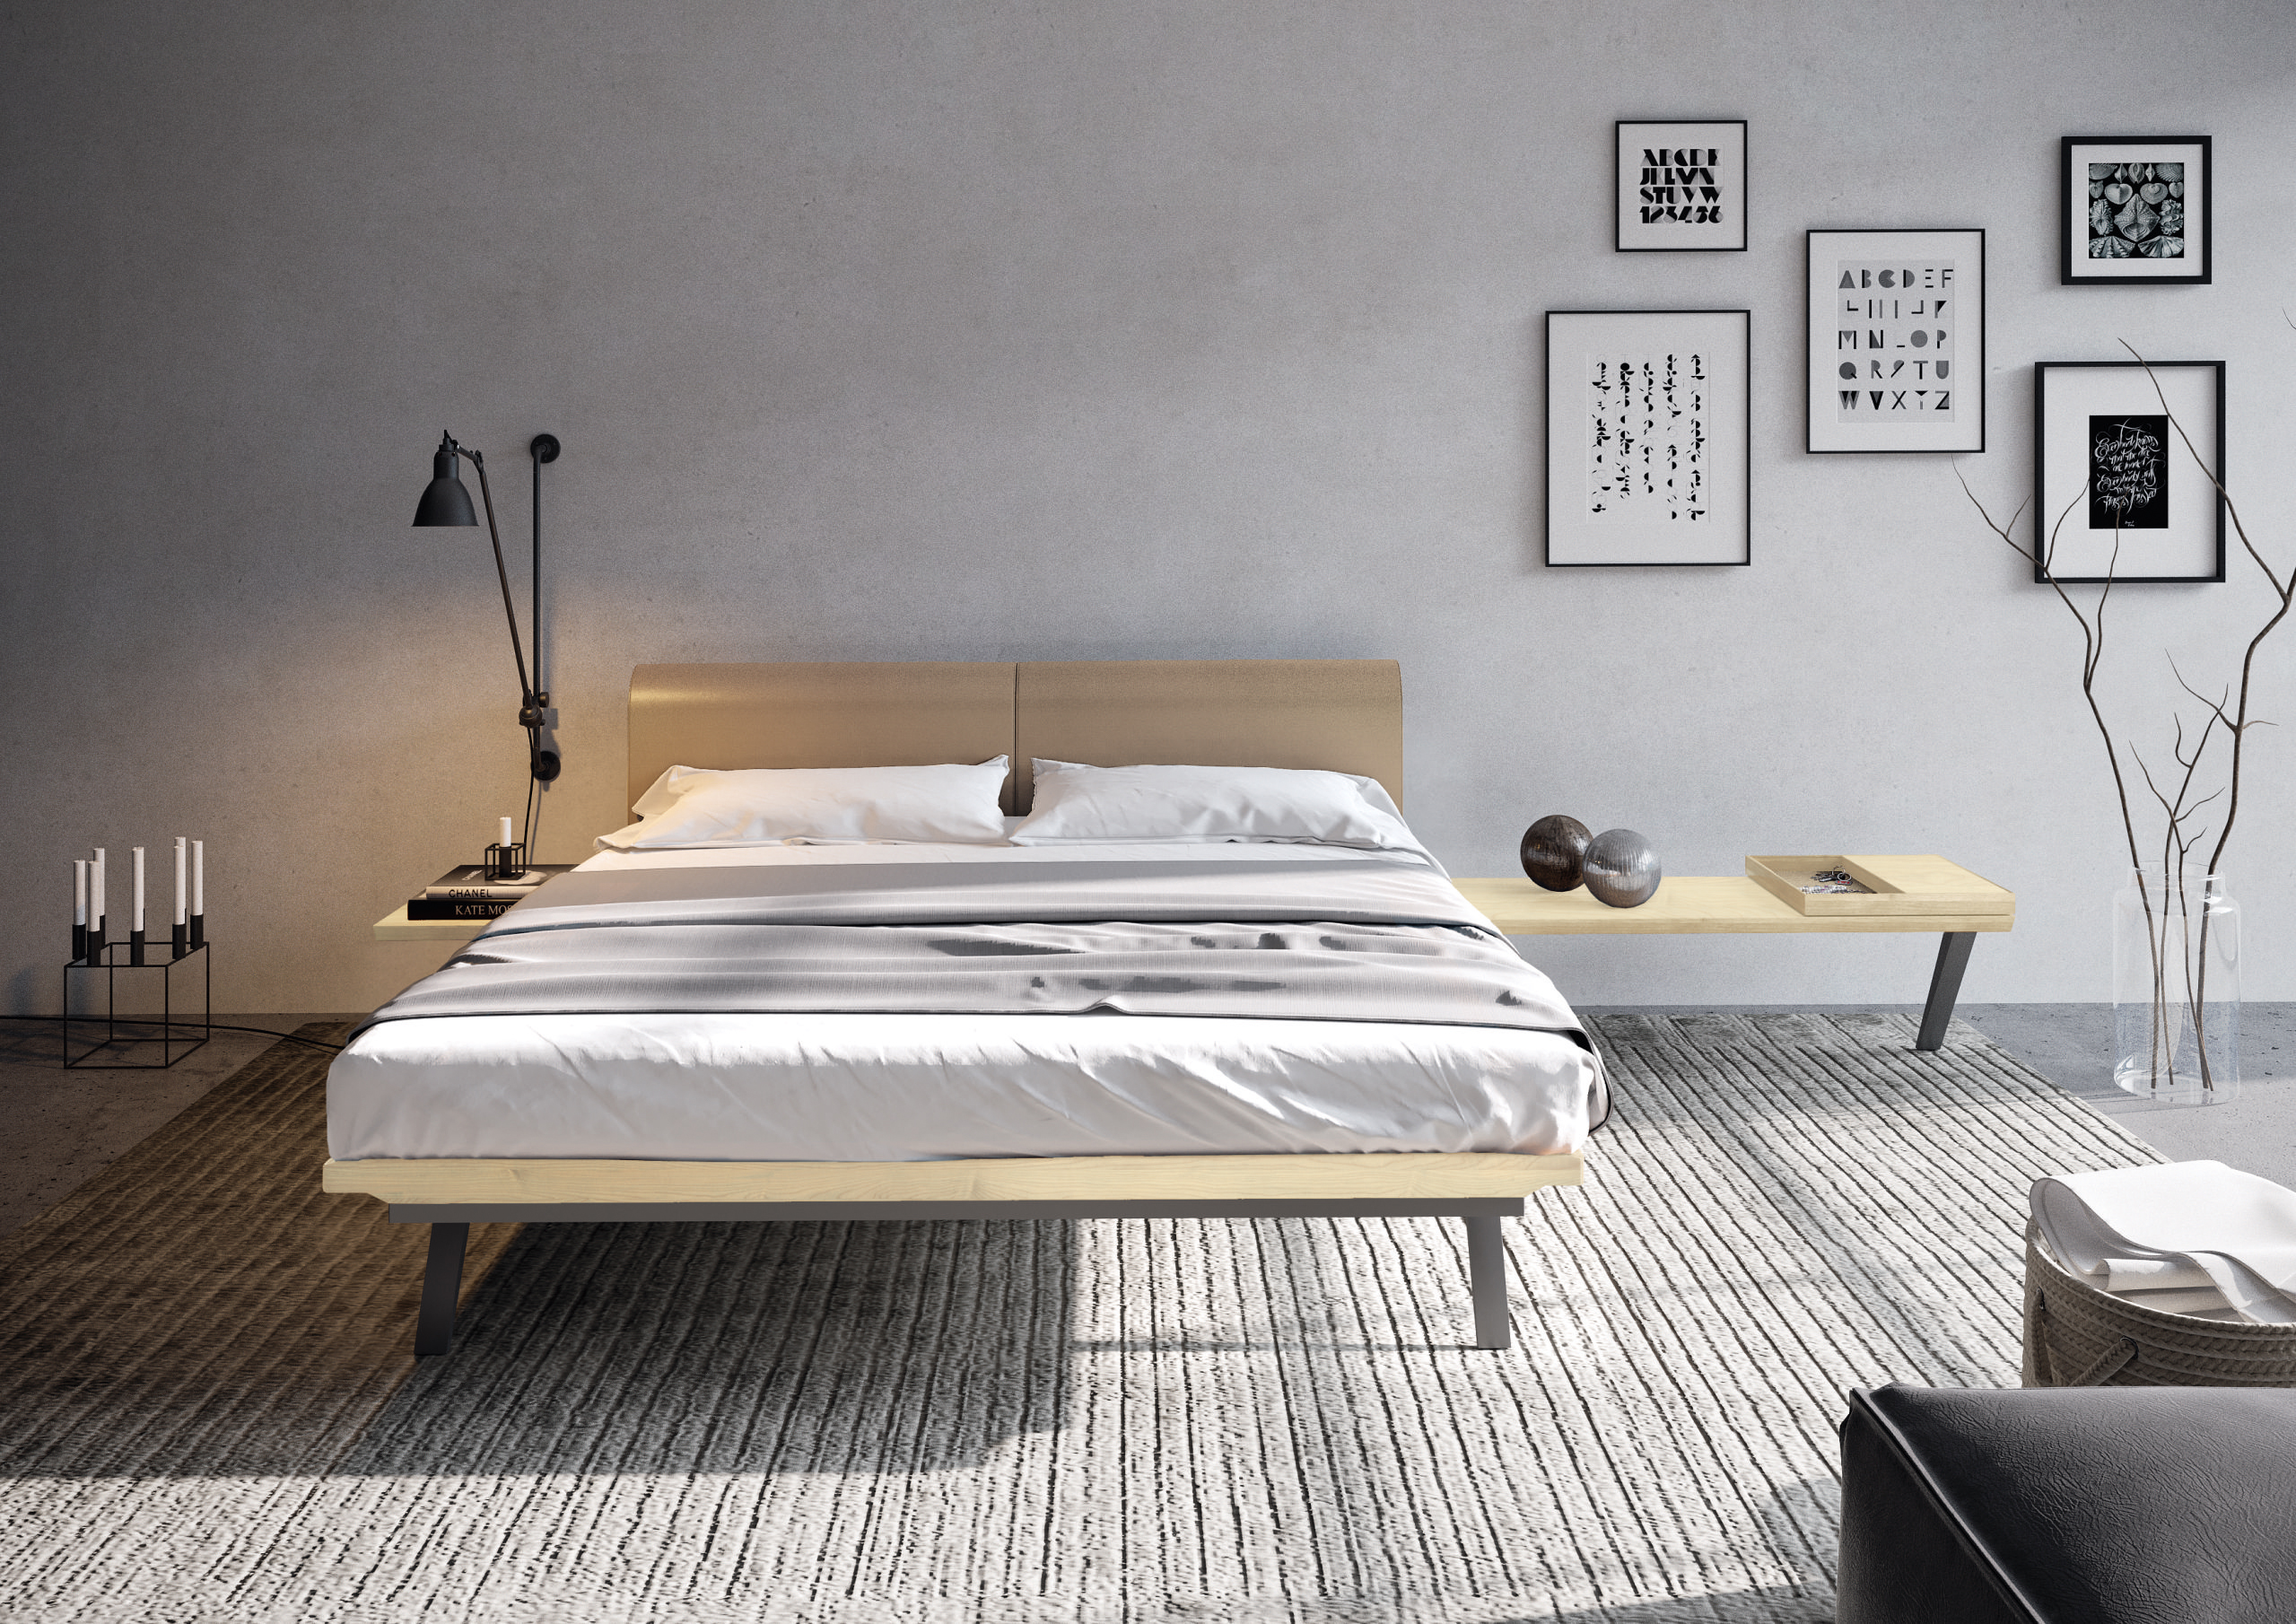 release date: 4df03 c51f0 Madera bed by hulsta-werke Huls GmbH & Co. KG | Archello